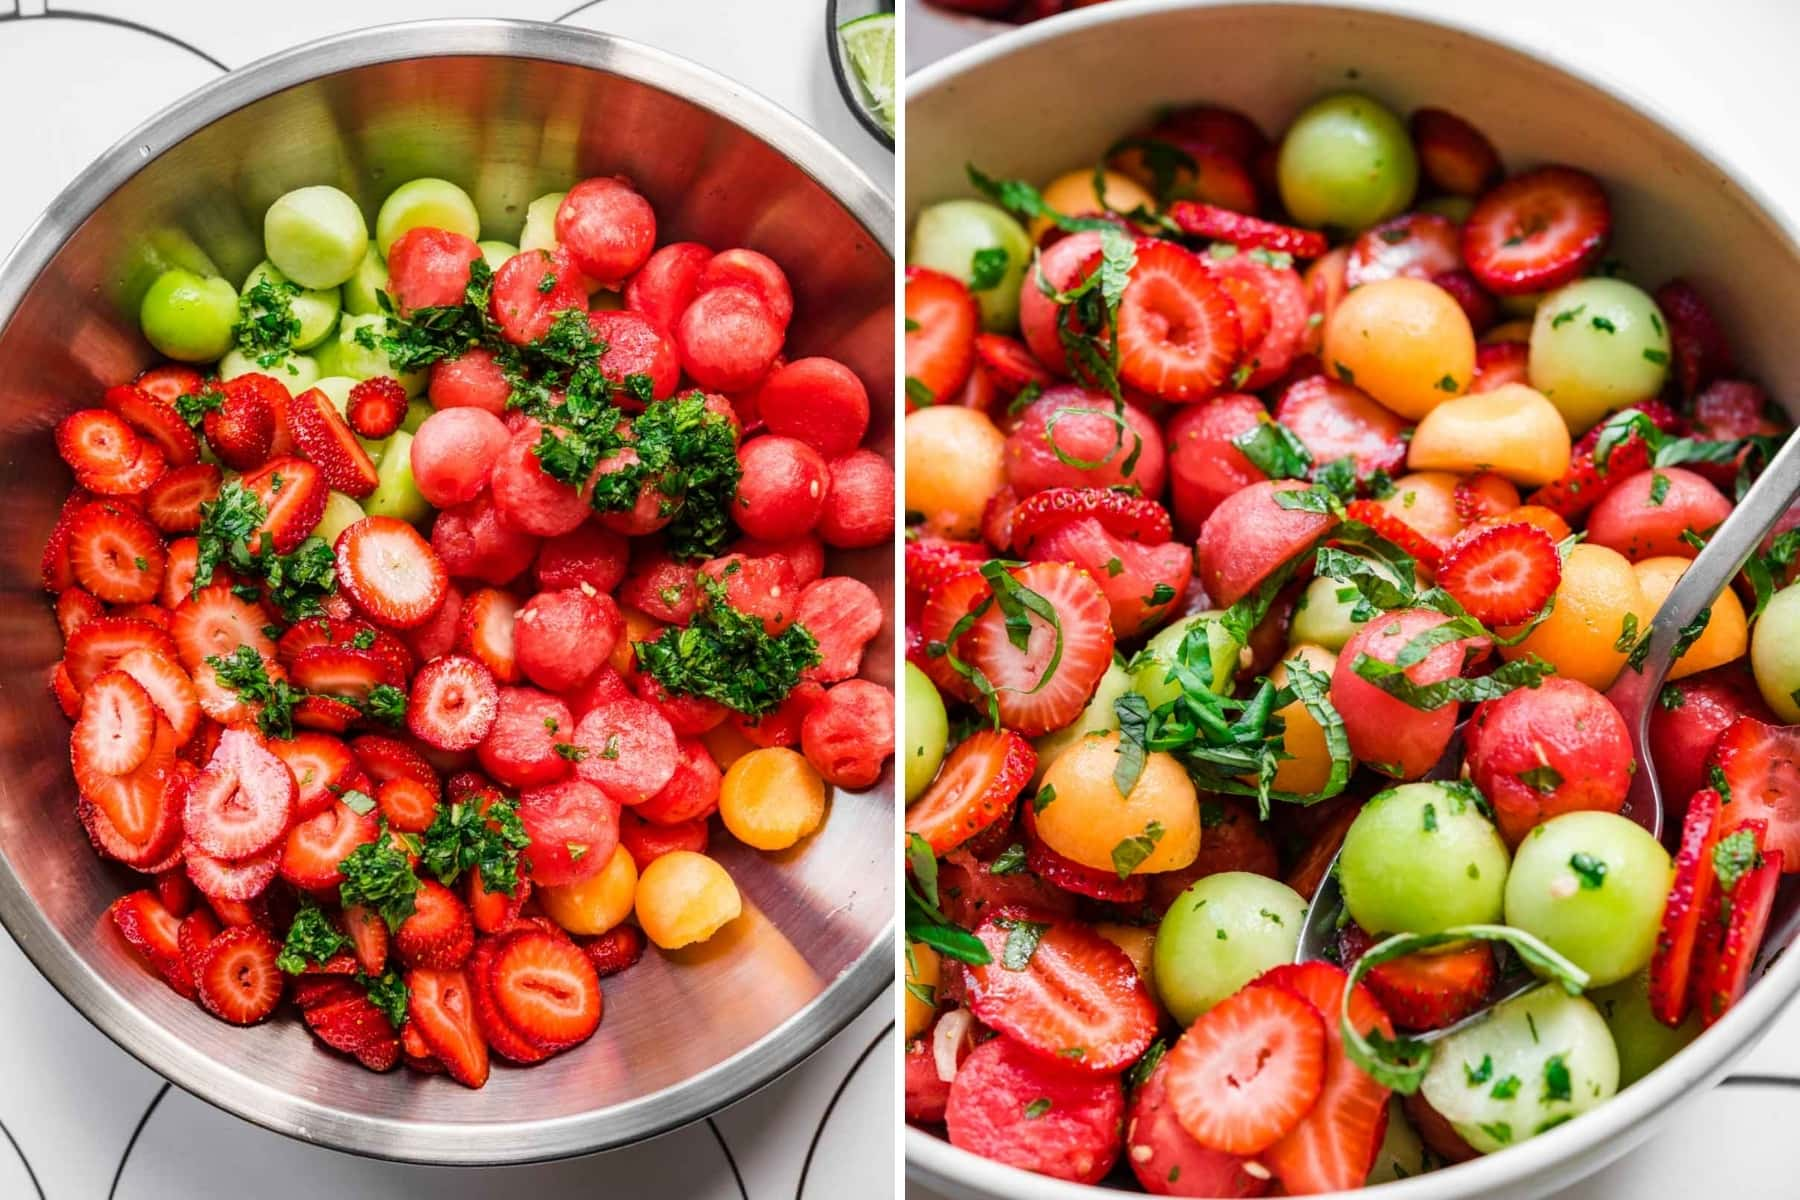 before and after stirring together ingredients for melon salad with strawberries and mint.